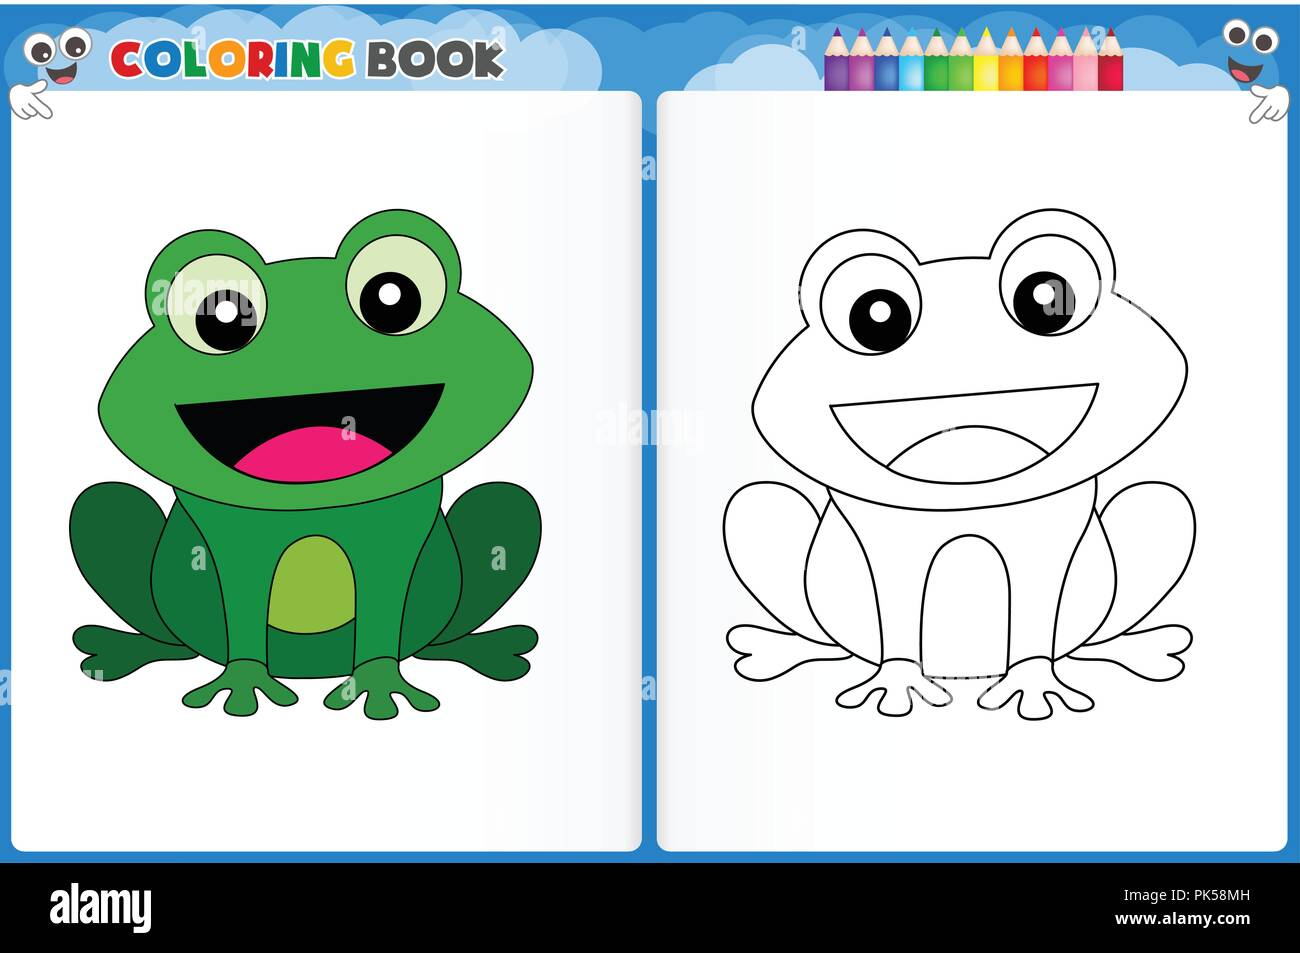 Coloring Page Cute Frog With Colorful Sample Printable